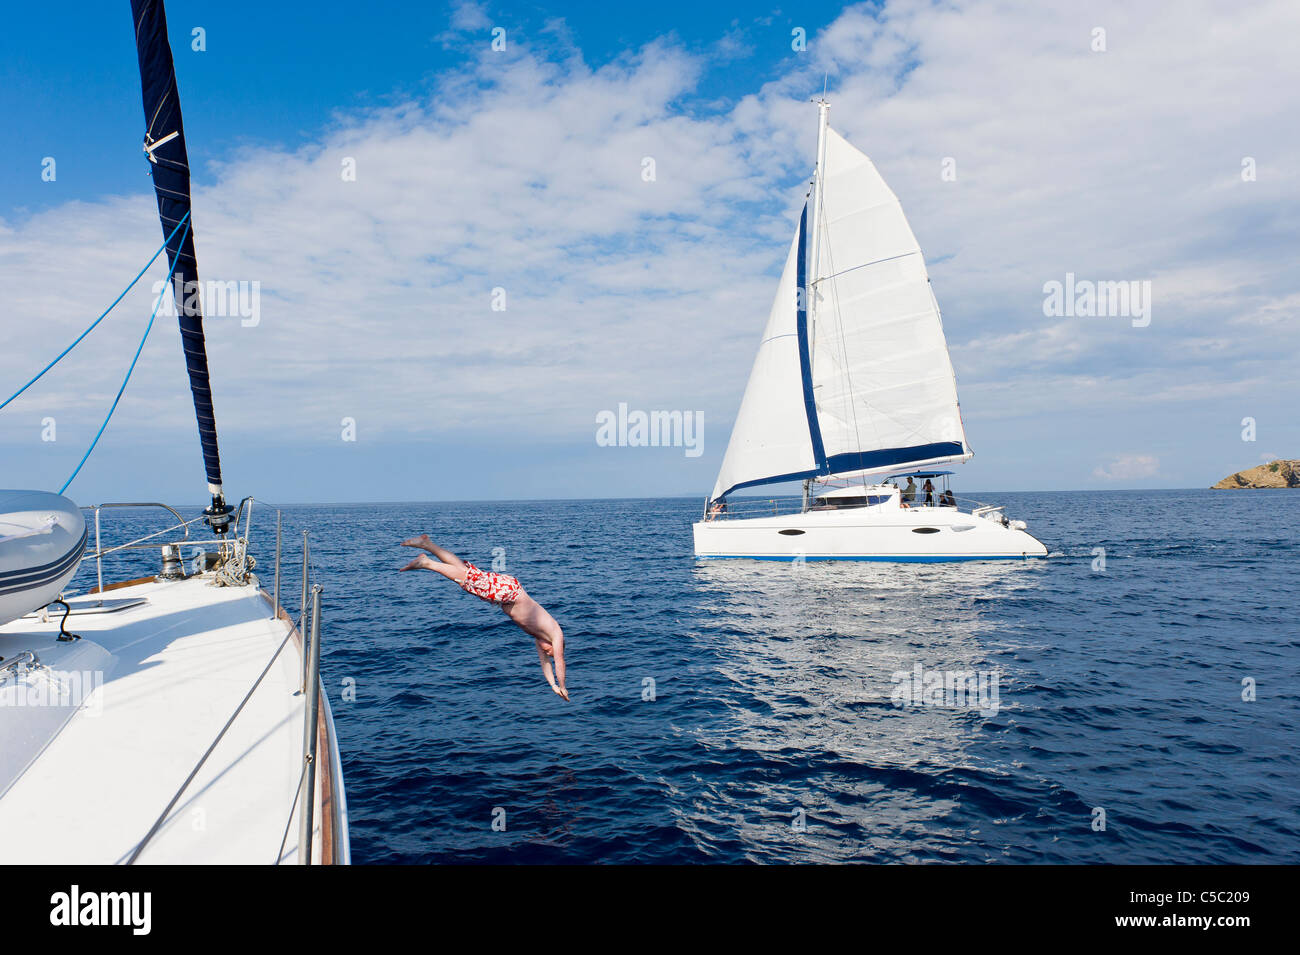 Man jumps into the sea from sailboat with catamaran in the background against cloudy sky - Stock Image